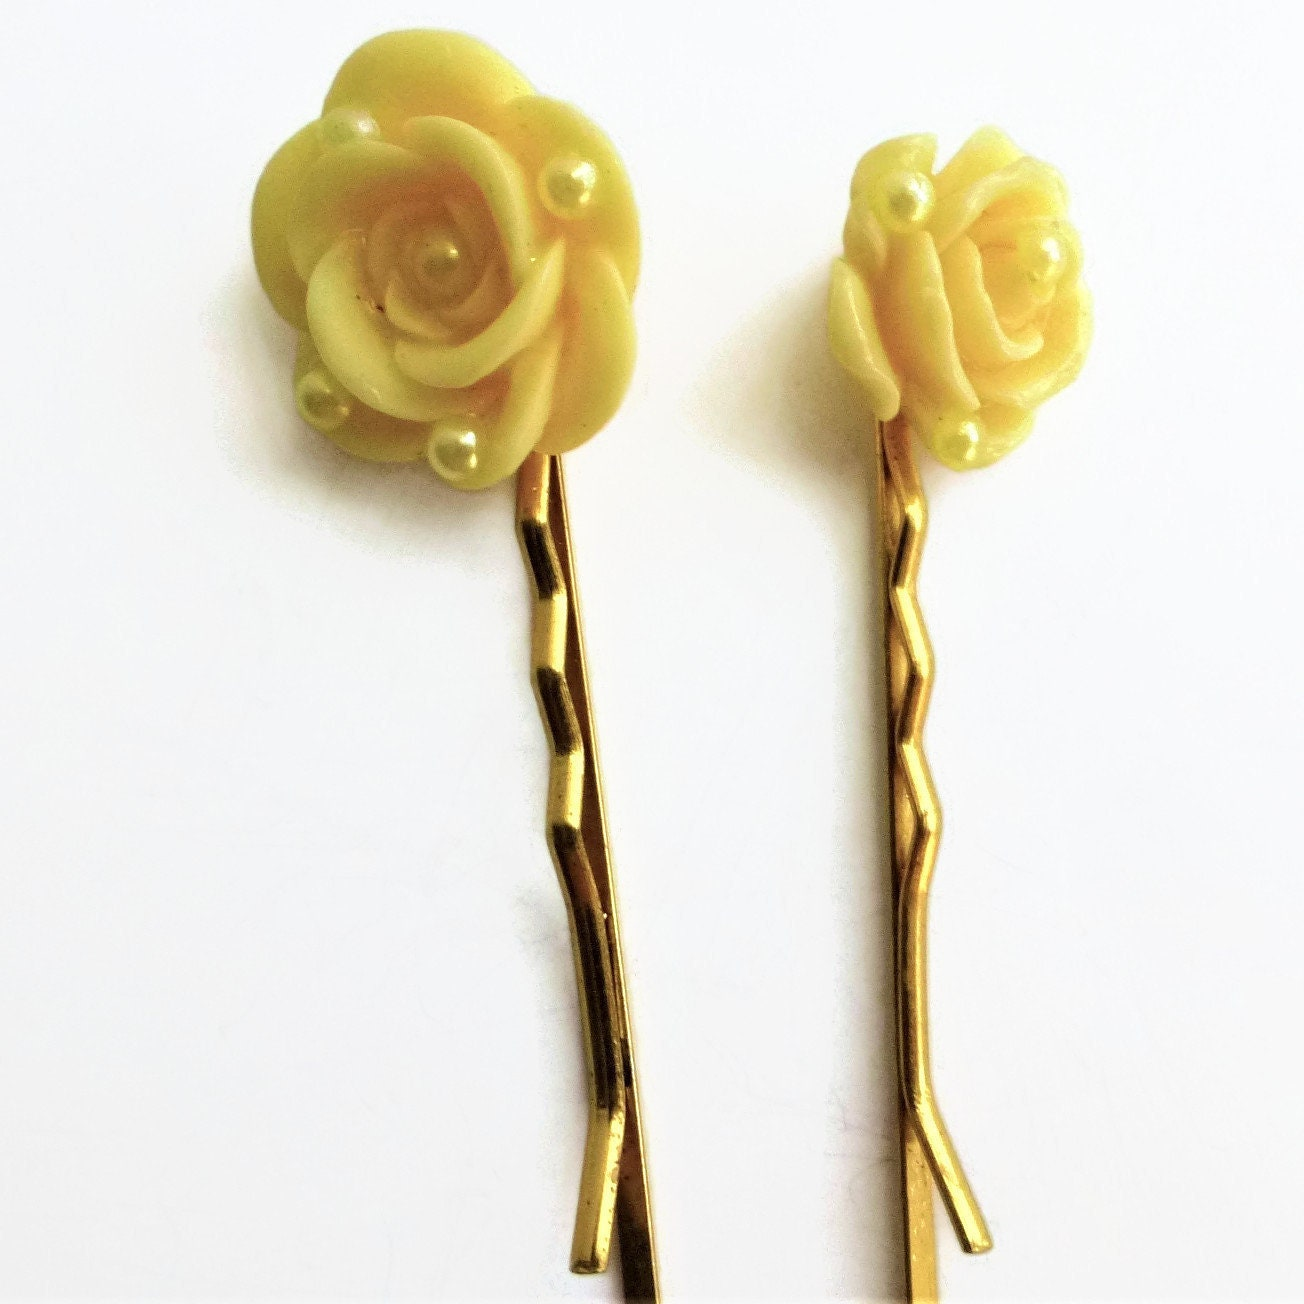 Hair Decoration Accessories Hair Jewellery Fancy Bobby Pins Etsy